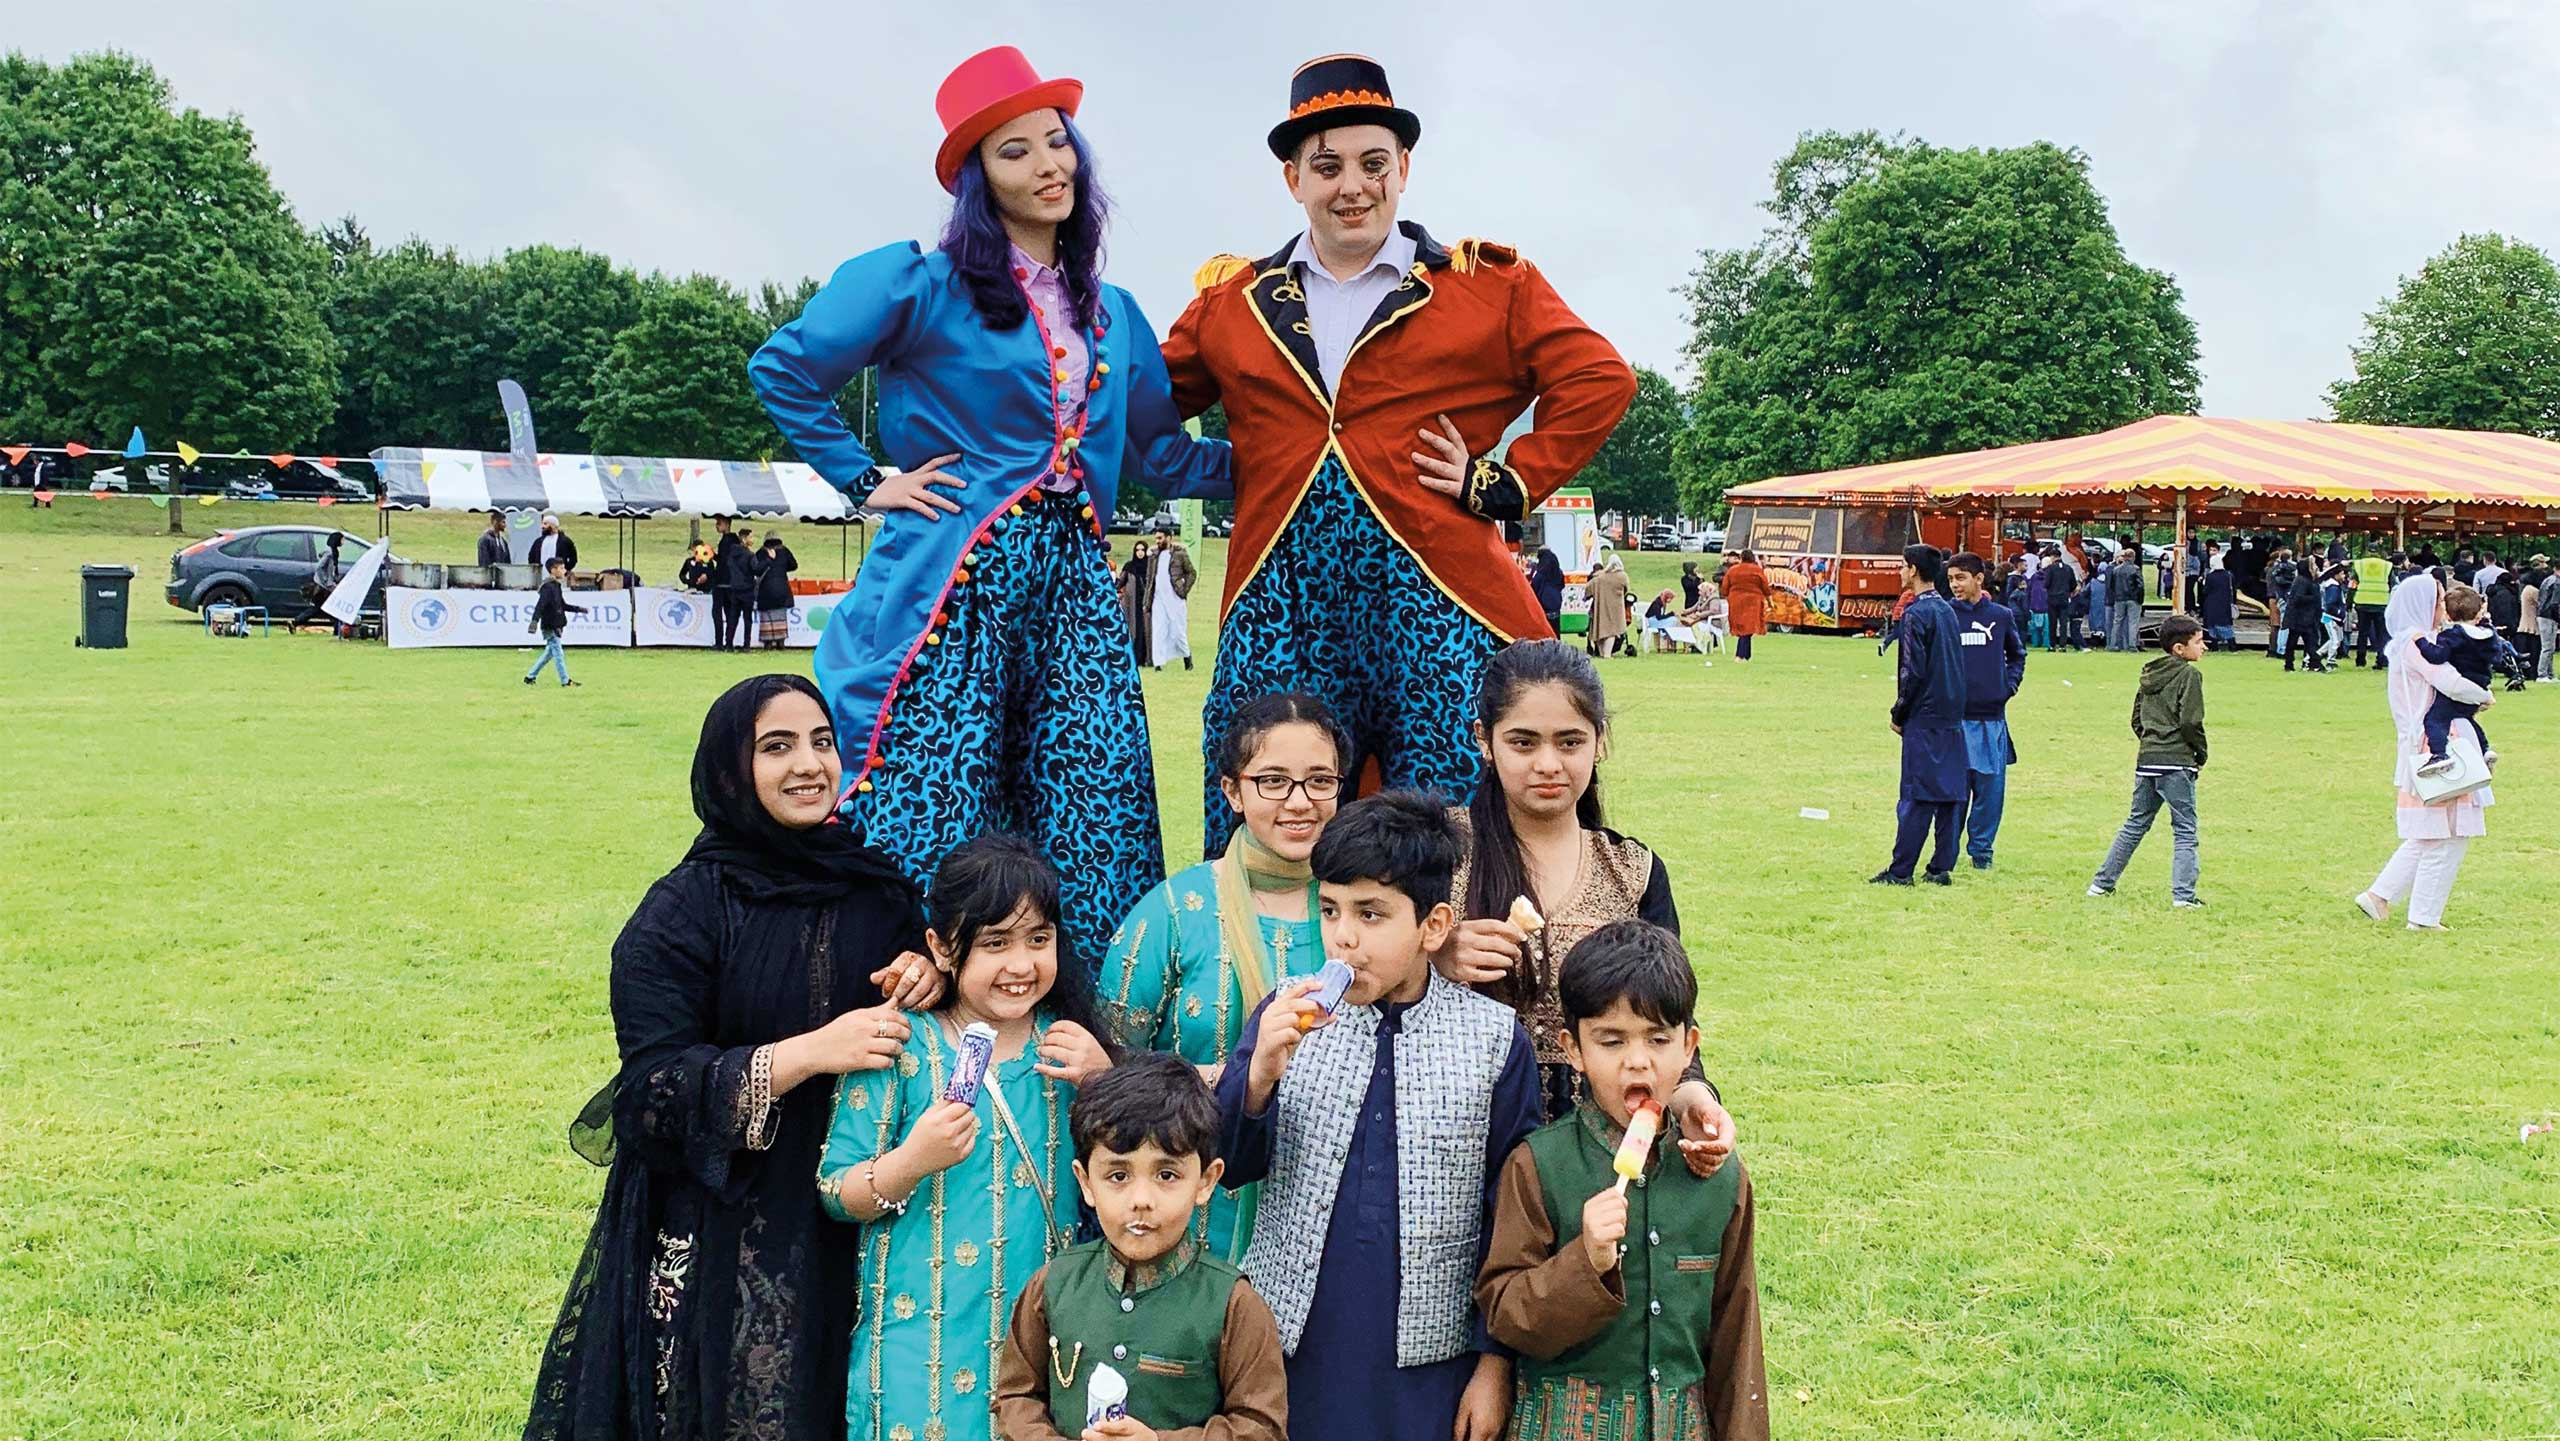 group photo at Inspire Eid with family in front of stilt walkers